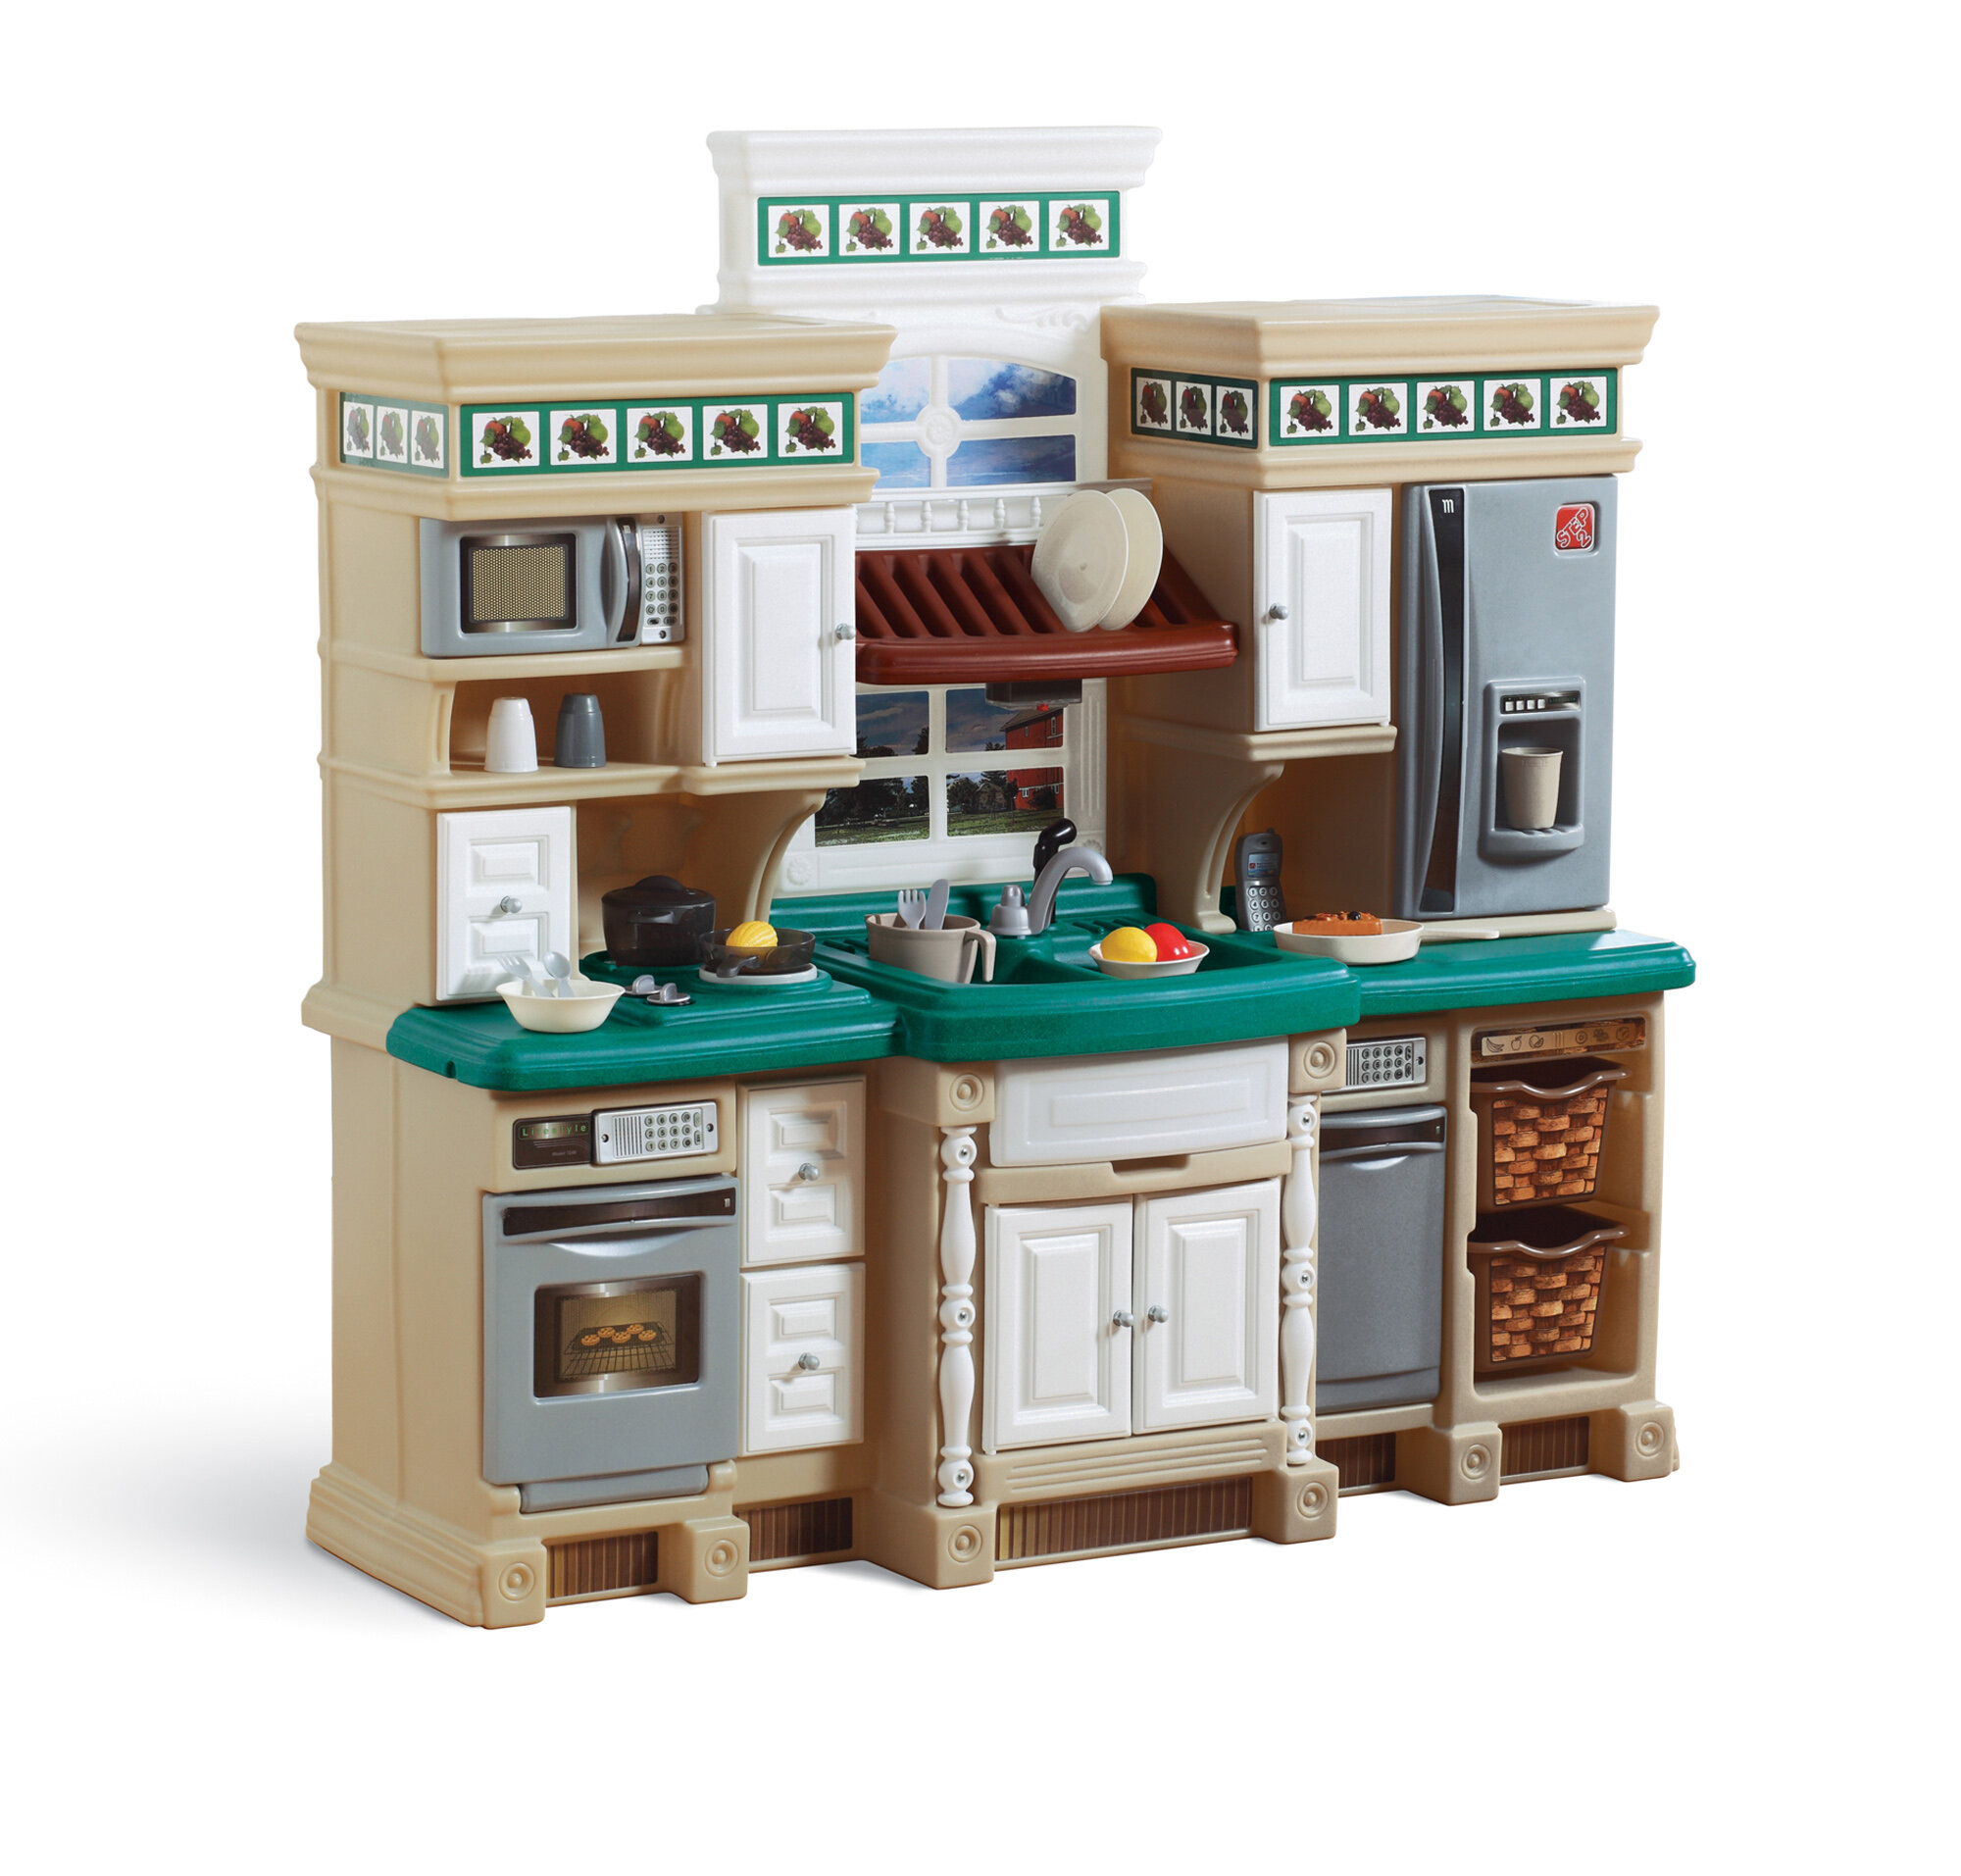 Step2 lifestyle deluxe kitchen set ebay for Toy kitchen set